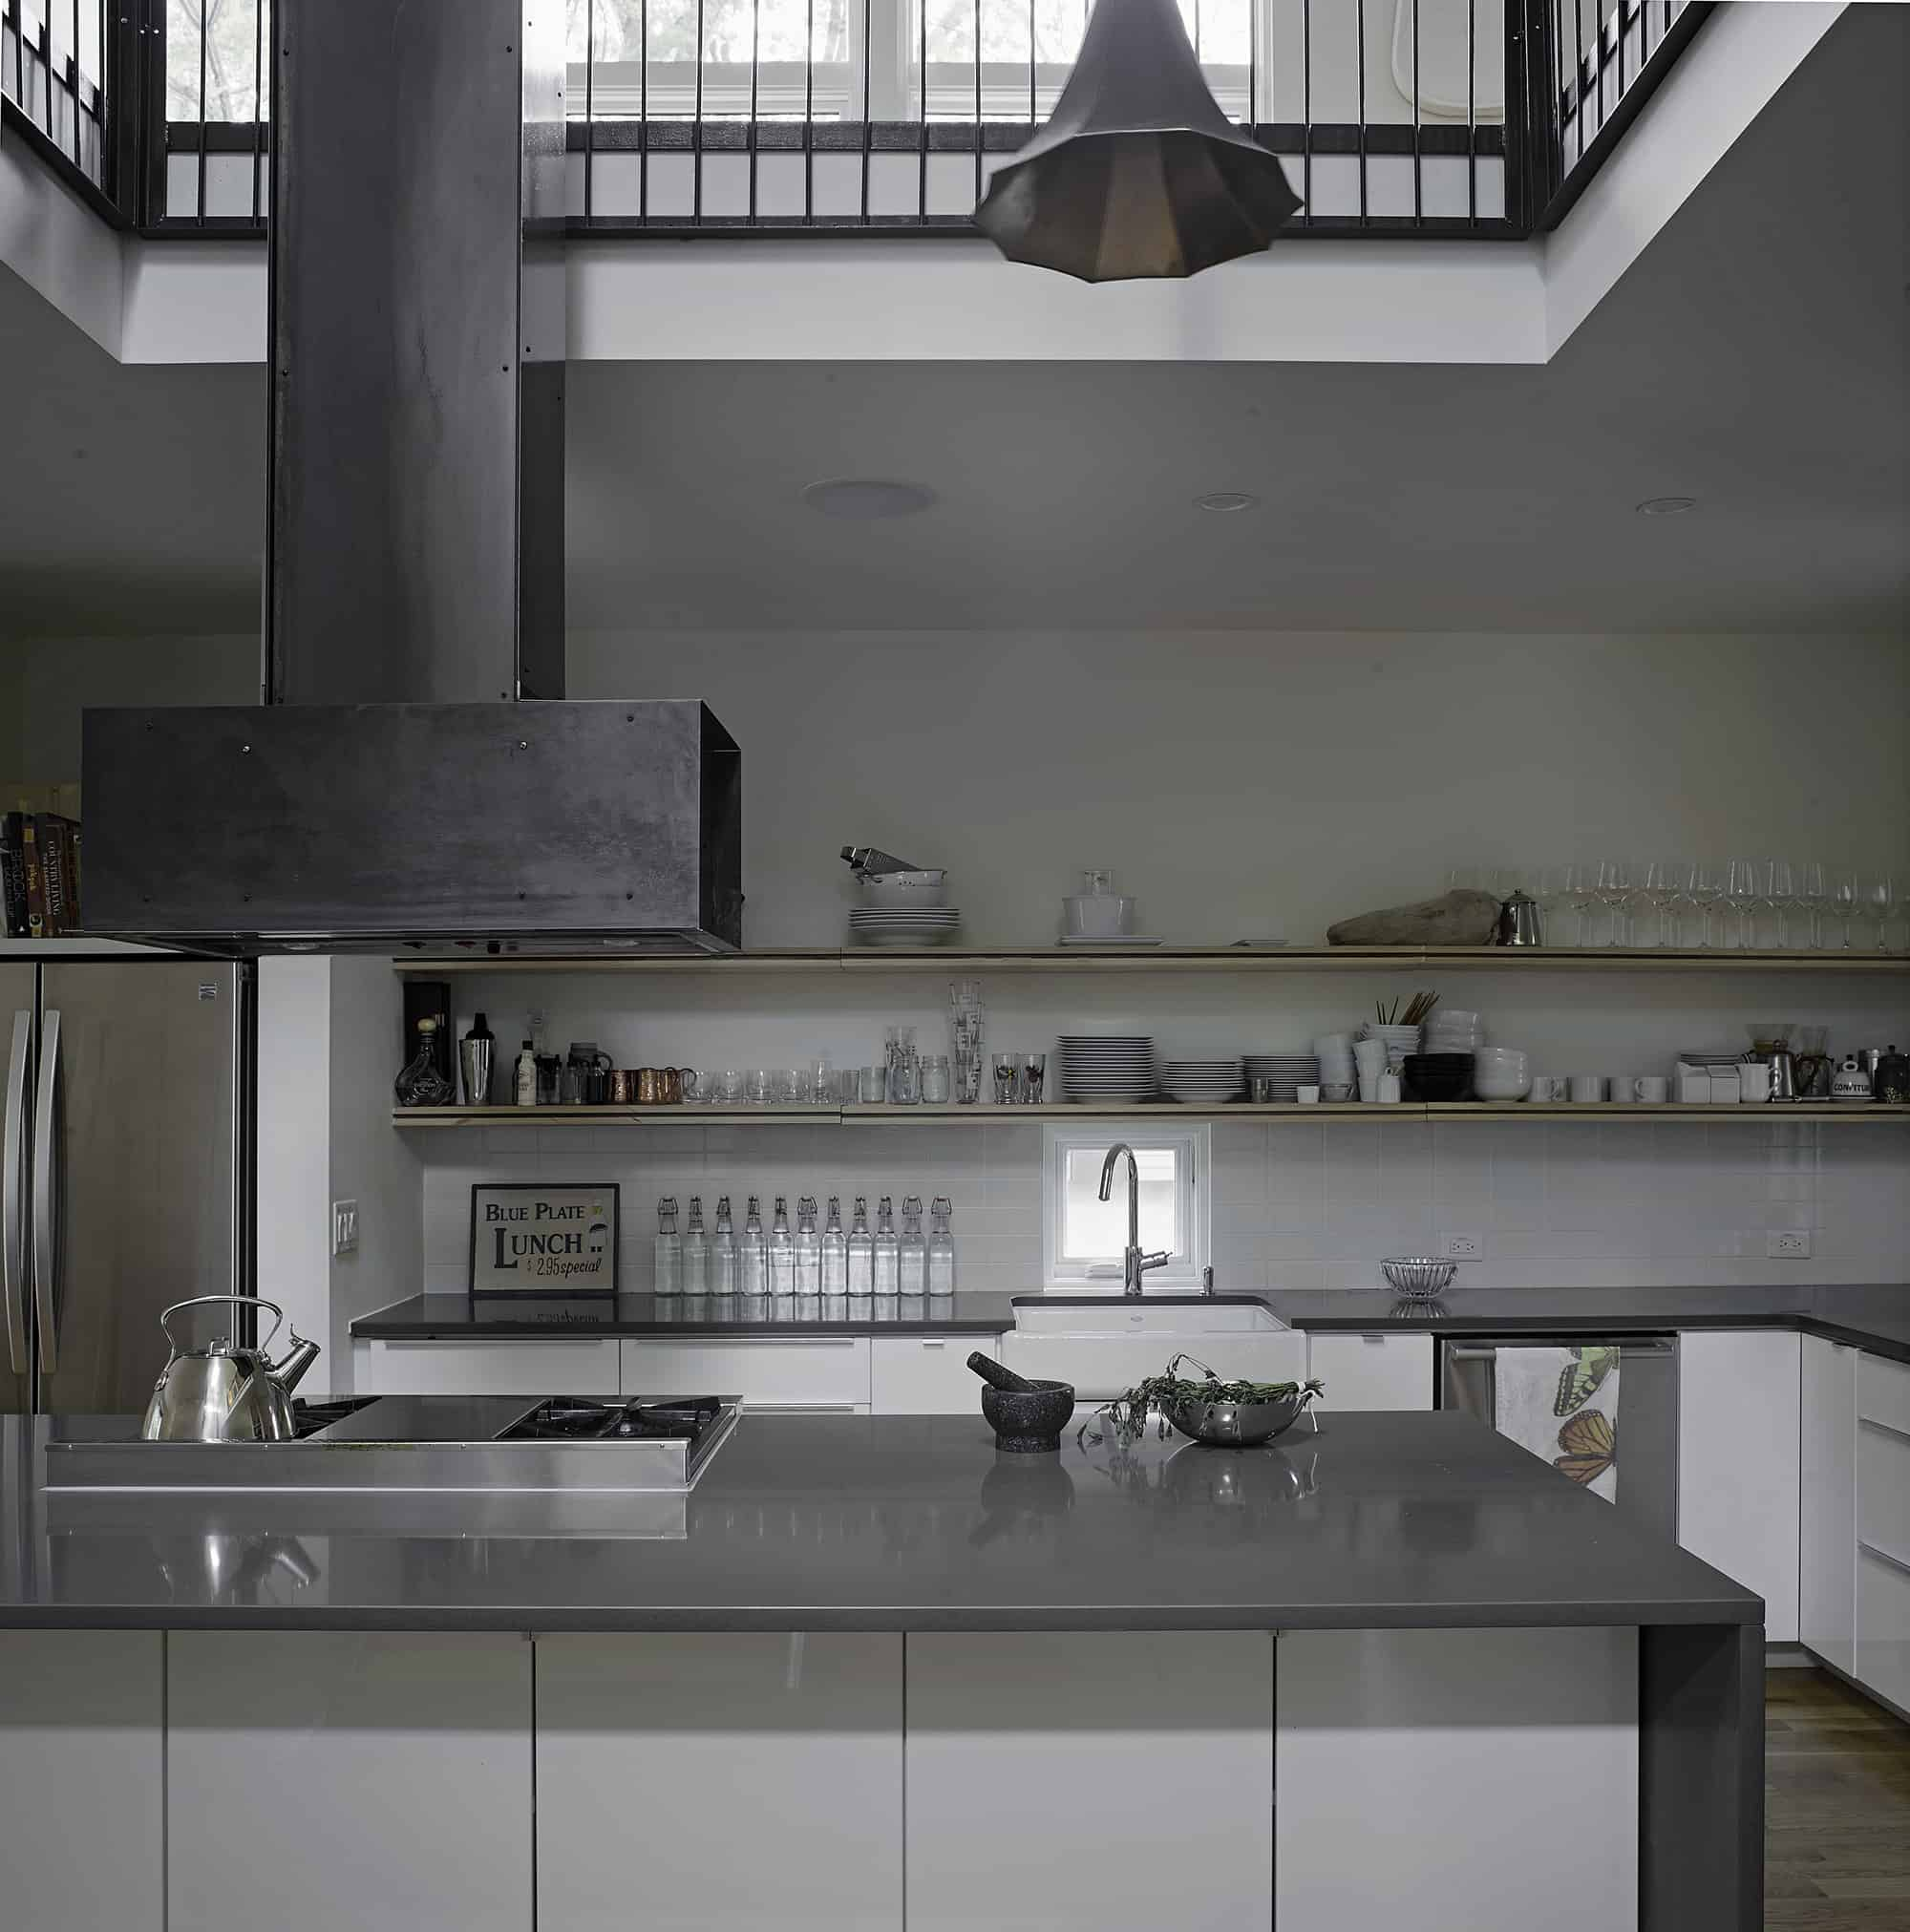 Home with 2-storey Kitchen creates Drama at Mezzanine Level Ultimate Home Design Pipe Html on ultimate dream home, advanced home design, modern villa design, ultimate home heating systems, cutting edge home design, 3d home design,